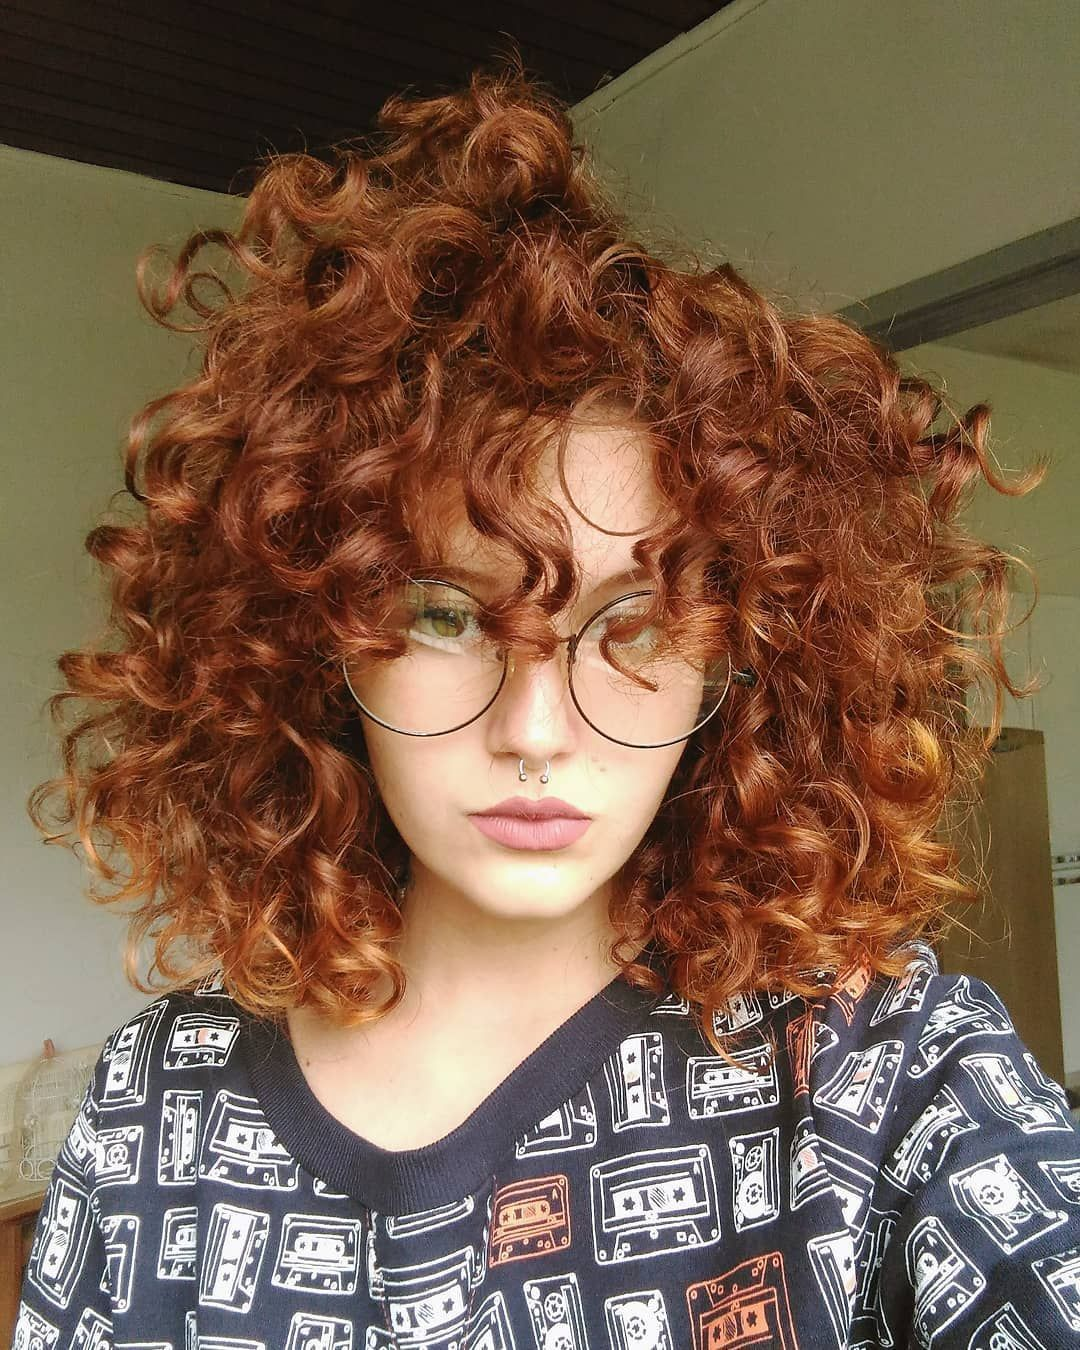 22 Curly Short Hairstyles You Will Absolutely Love Short Red Hair Red Curly Hair Short Curly Hair